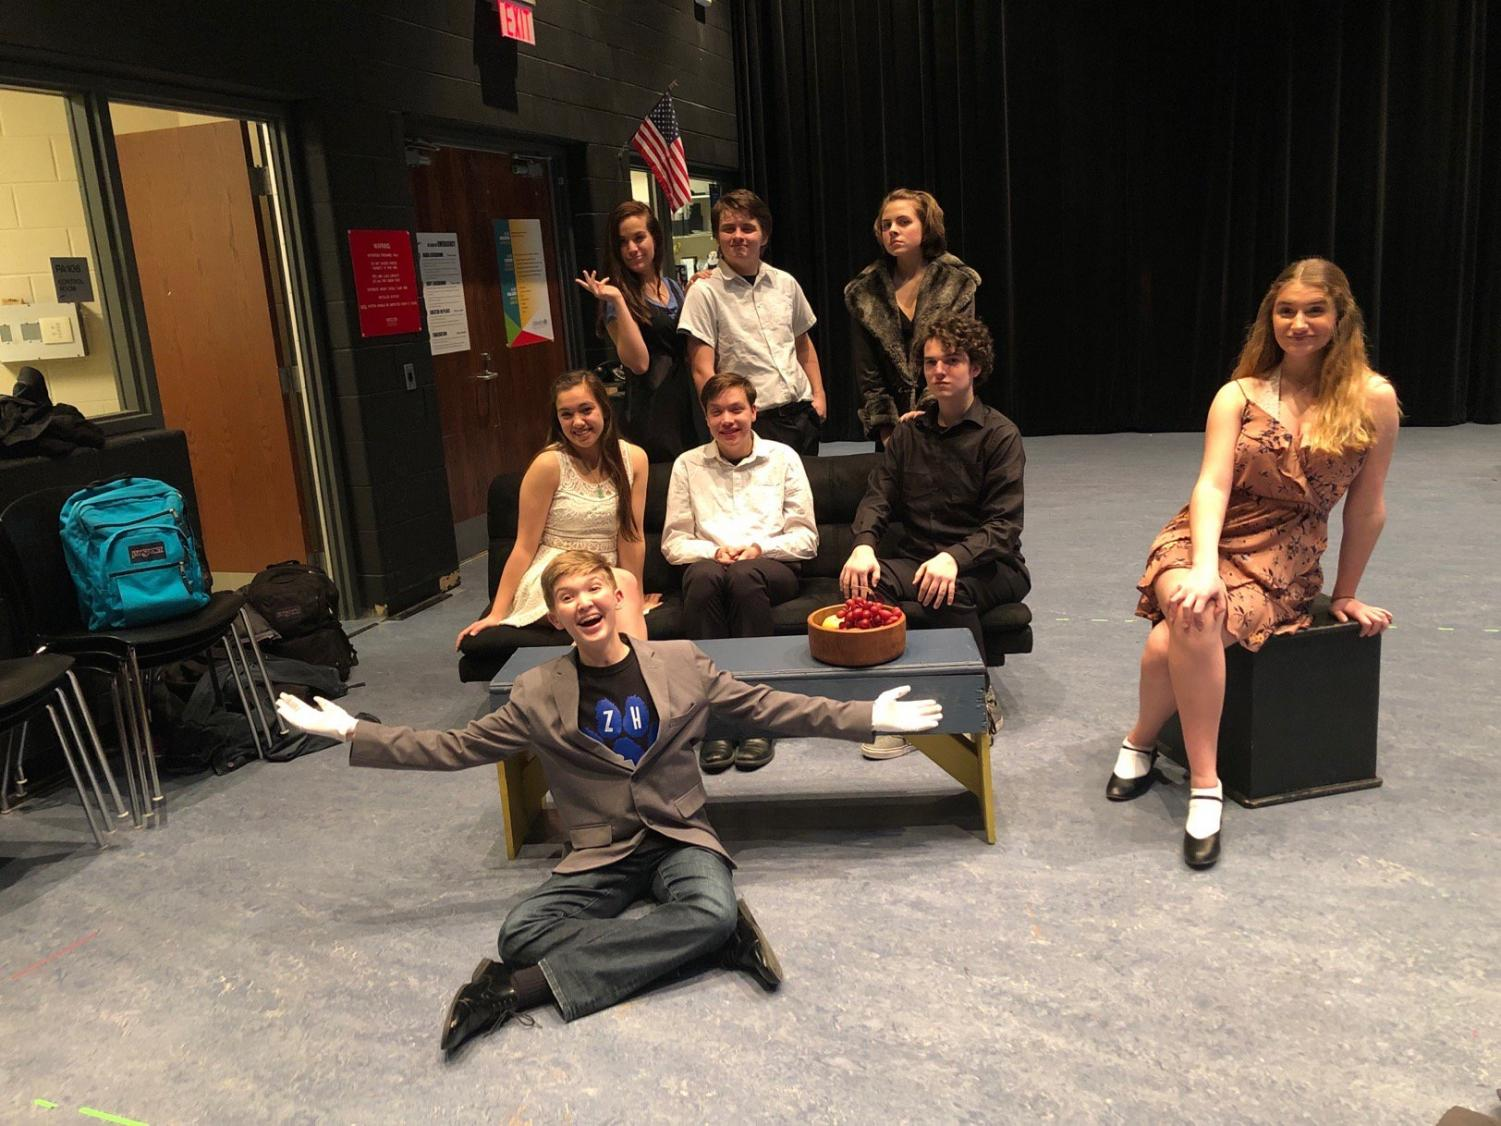 The 8-person cast of Lend Me a Tenor and the entire crew behind the scenes are excited to share the show with the audience. According to Brittany Rogus, sophomore, the play is filled with lots of comedy that everyone can look forward to.